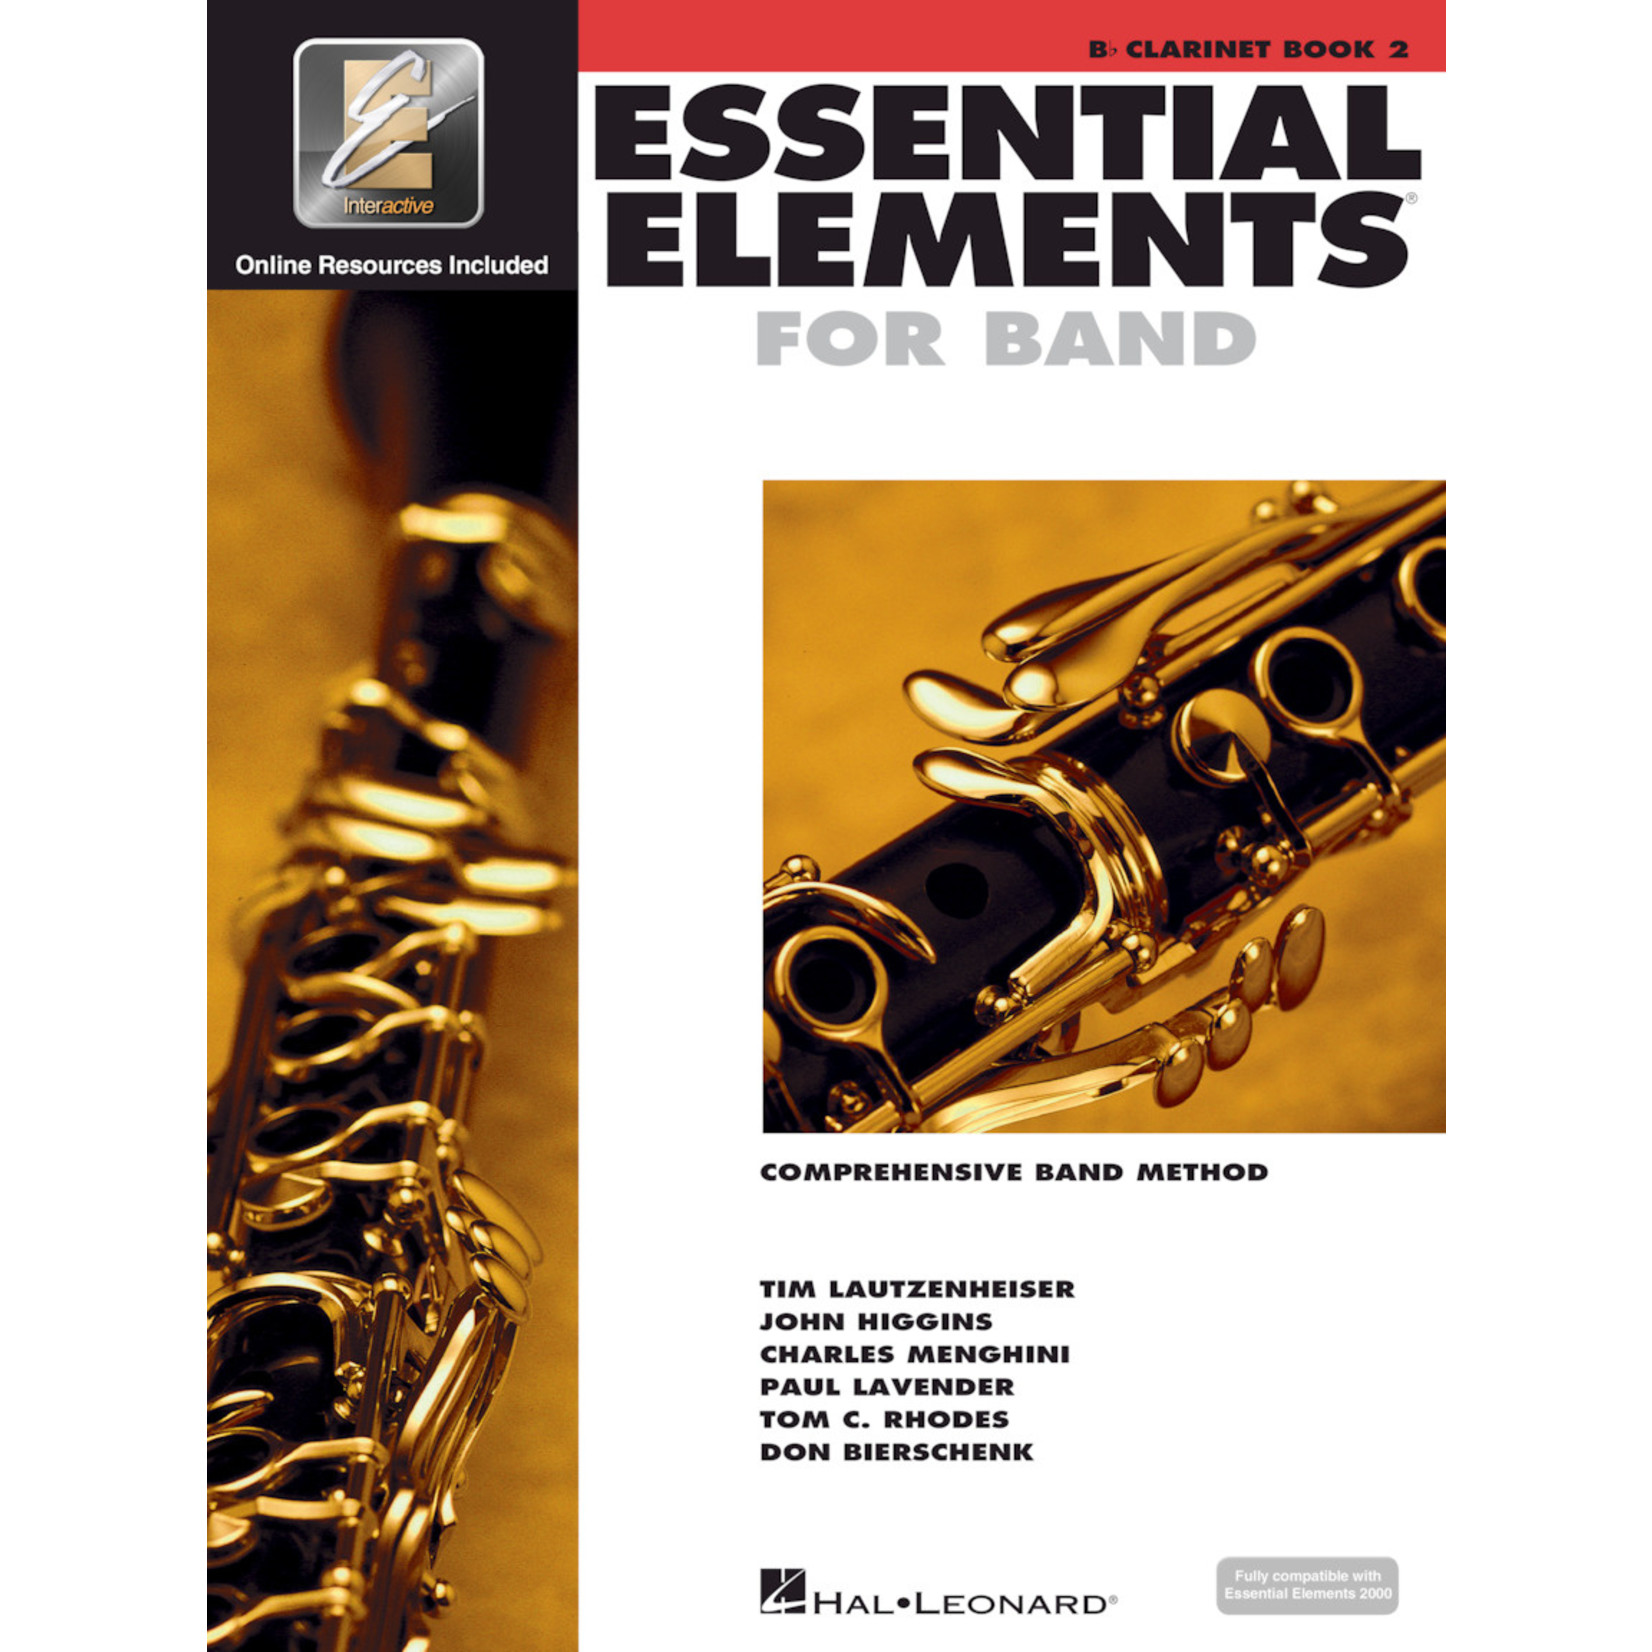 Hal Leonard Essential Elements for Band Clarinet Book 2